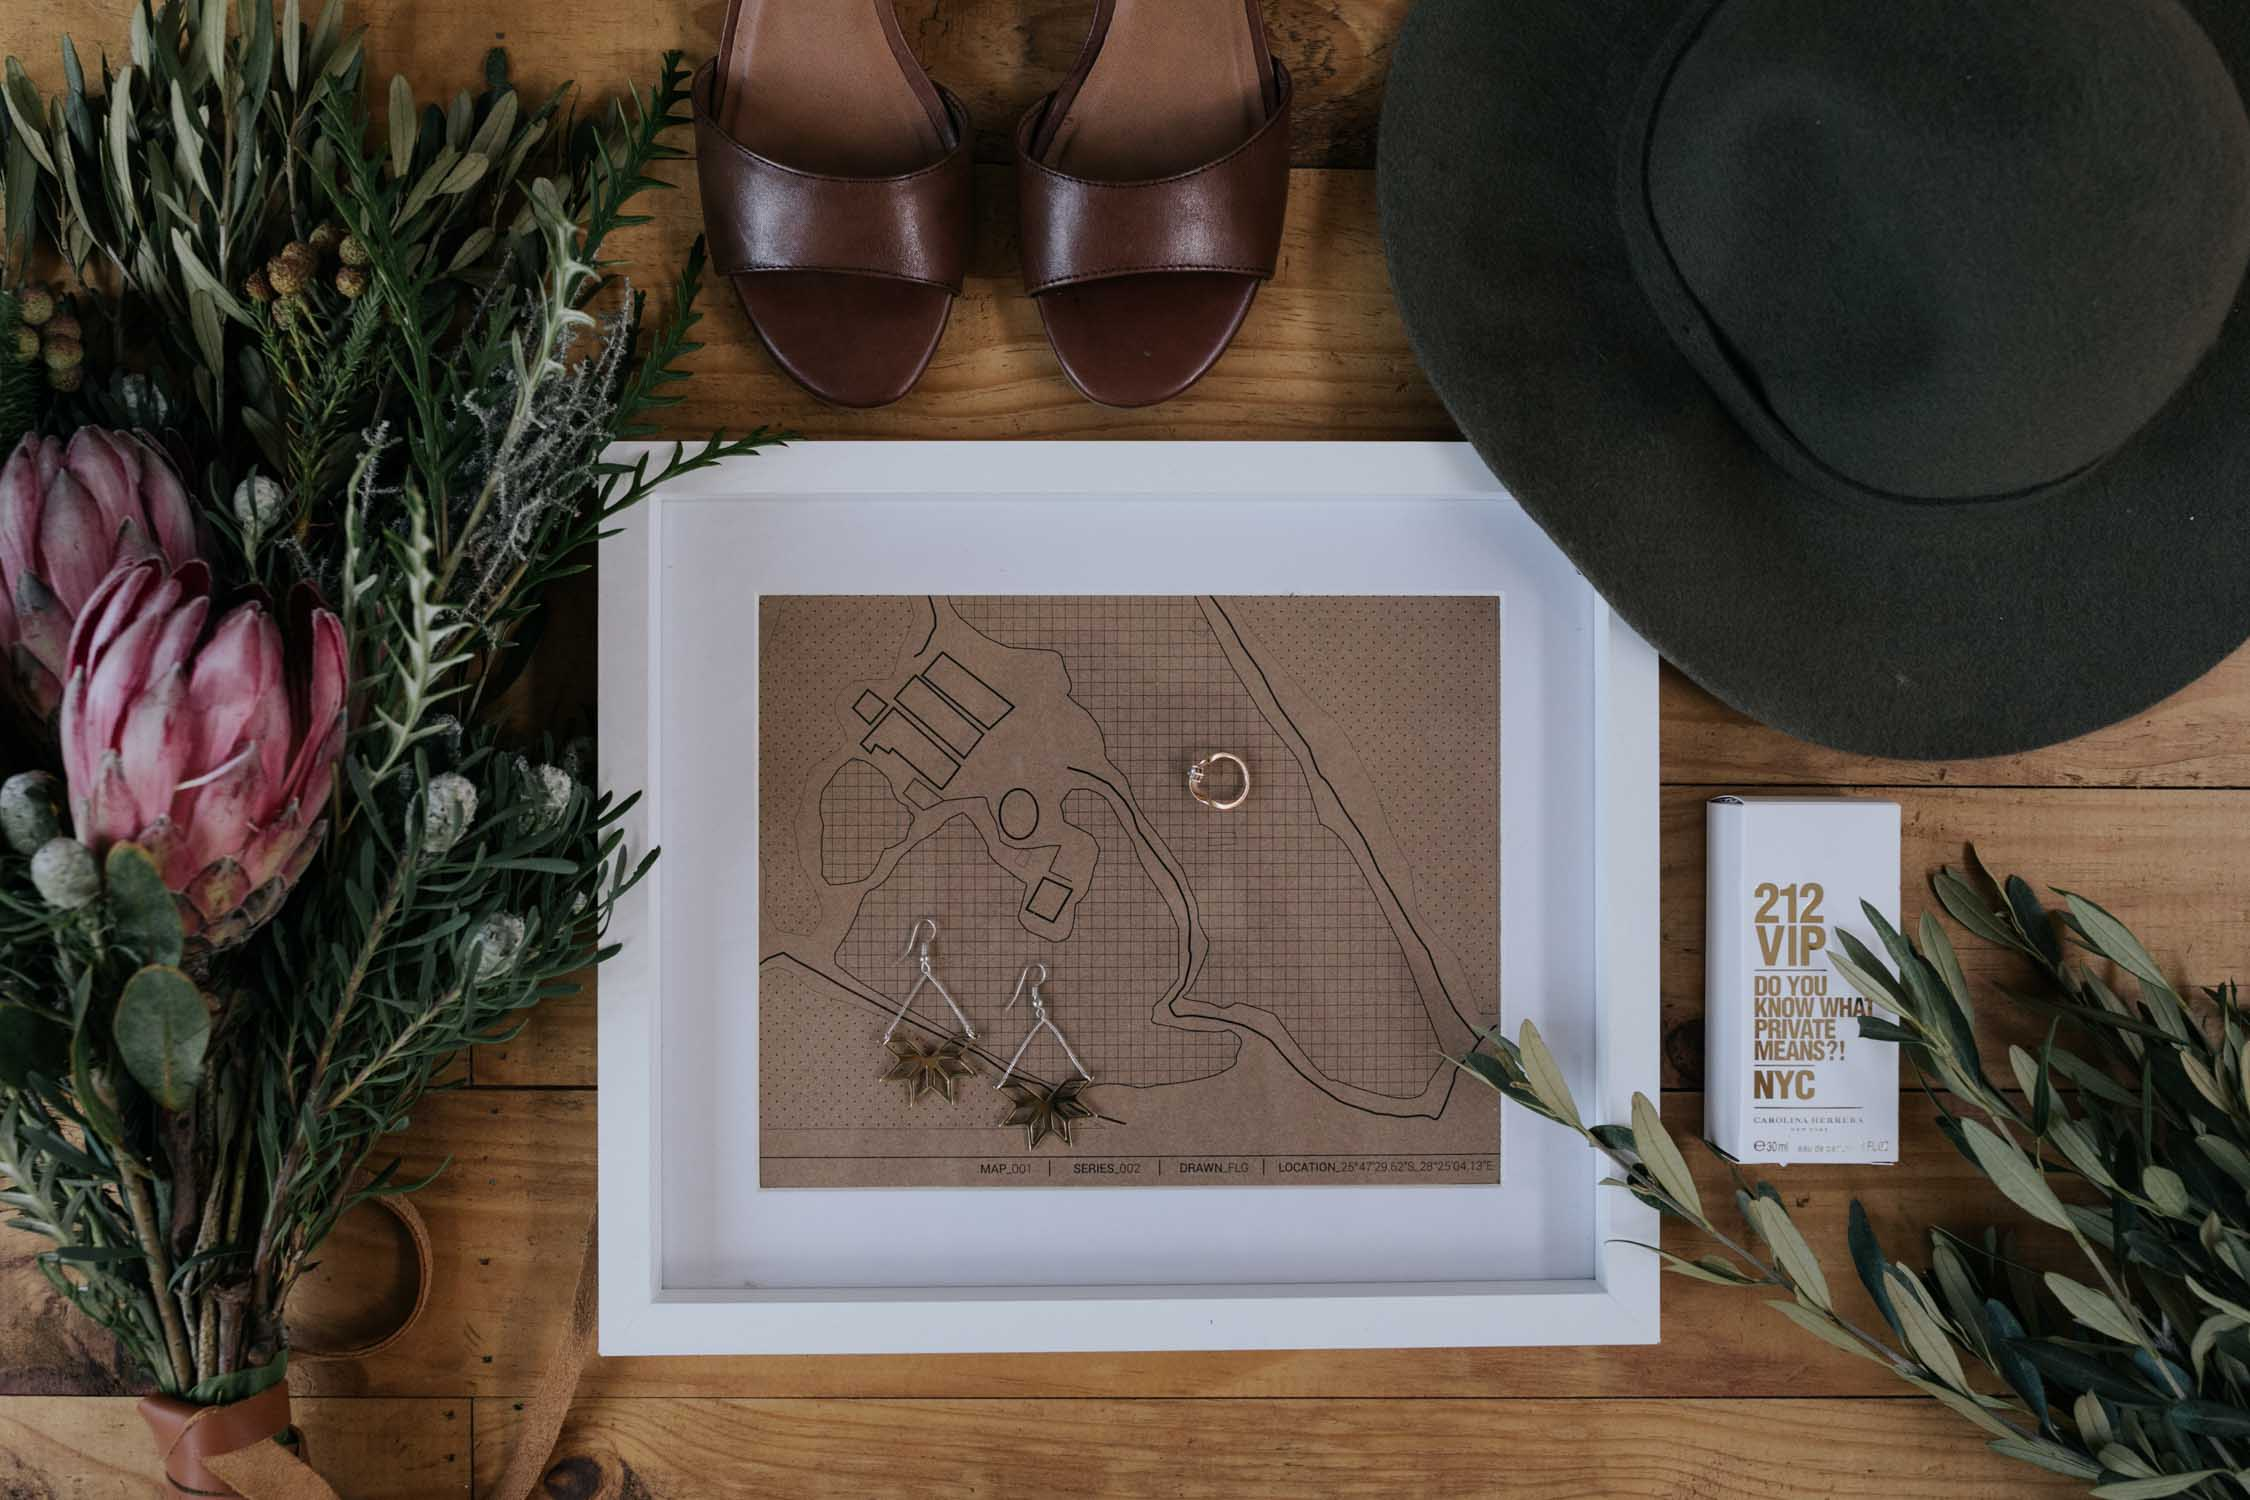 A wedding flat lay of bride's accessories like leather shoes, green felt hat, Protea bouquet, geometric earrings and perfume